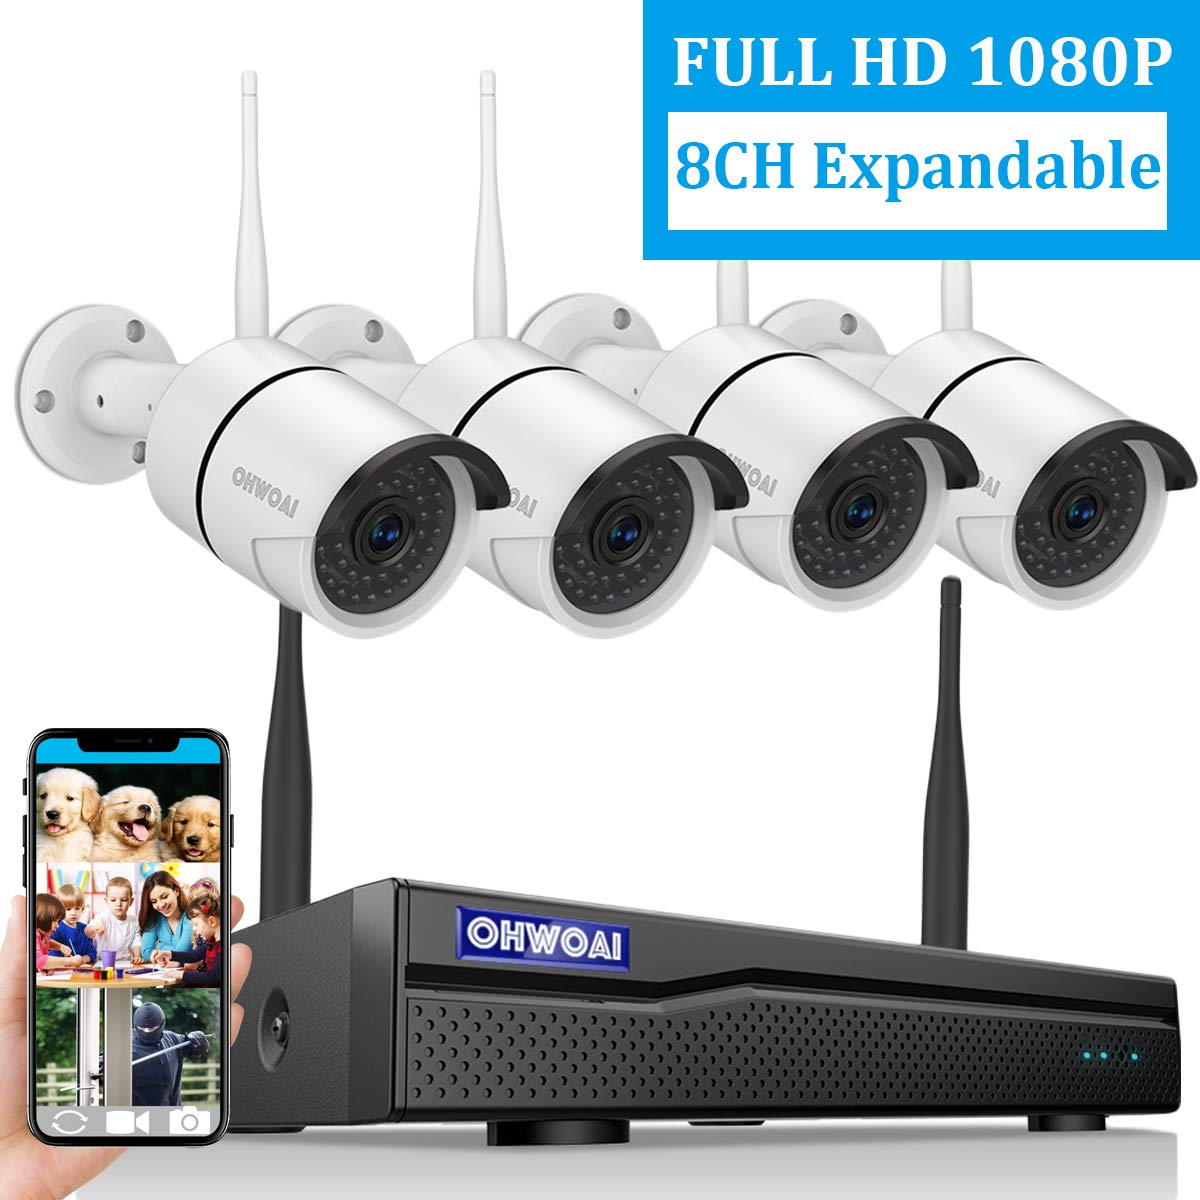 【2019 New 8CH Expandable】OHWOAI Security Camera System Wireless, 8CH 1080P NVR, 4Pcs 1080P HD Outdoor/ Indoor IP Cameras,Home CCTV Surveillance System (No Hard Drive)Waterproof,Remote Access,Plug&Play by OHWOAI